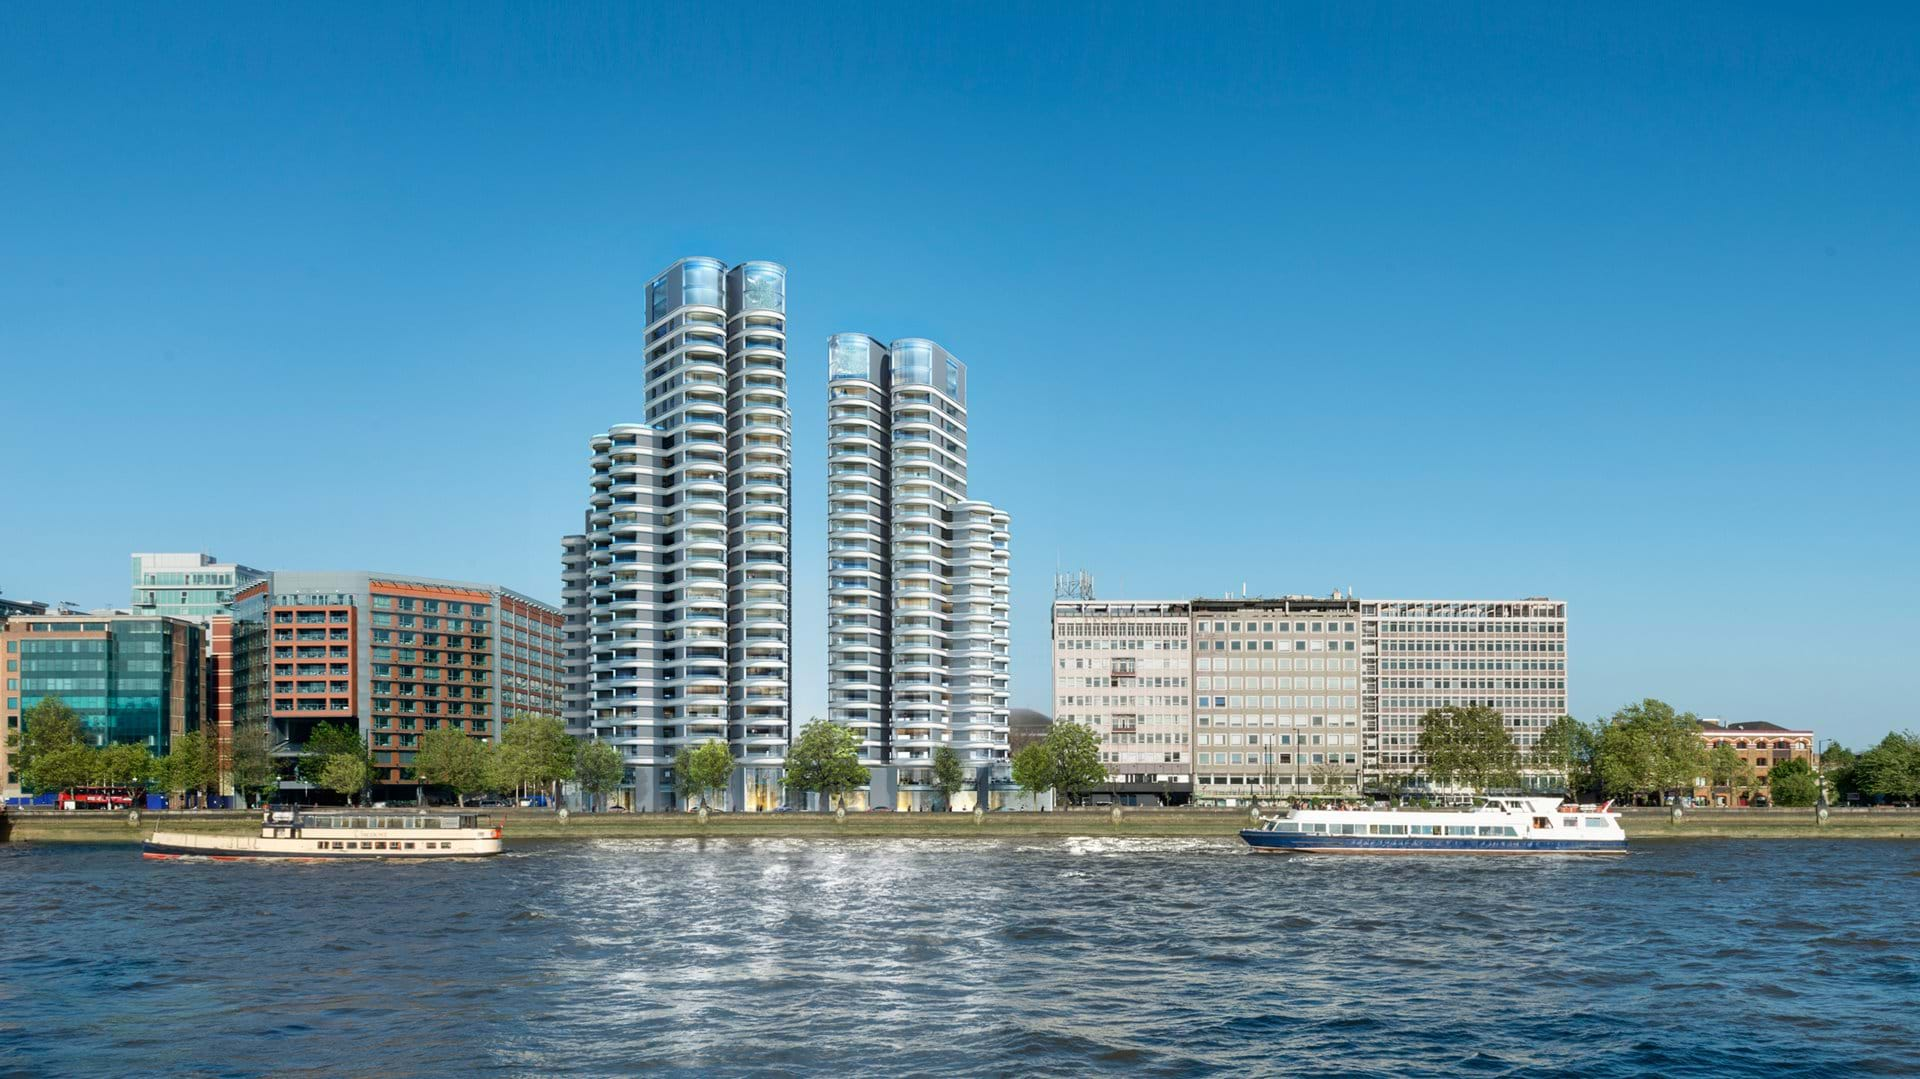 he Corniche is a mixed-use development of three landmark towers along the Albert Embankment on the south bank of the River Thames, opposite the Houses of Parliament where a 53-year old coach driver has been killed by a window which fell on him from height